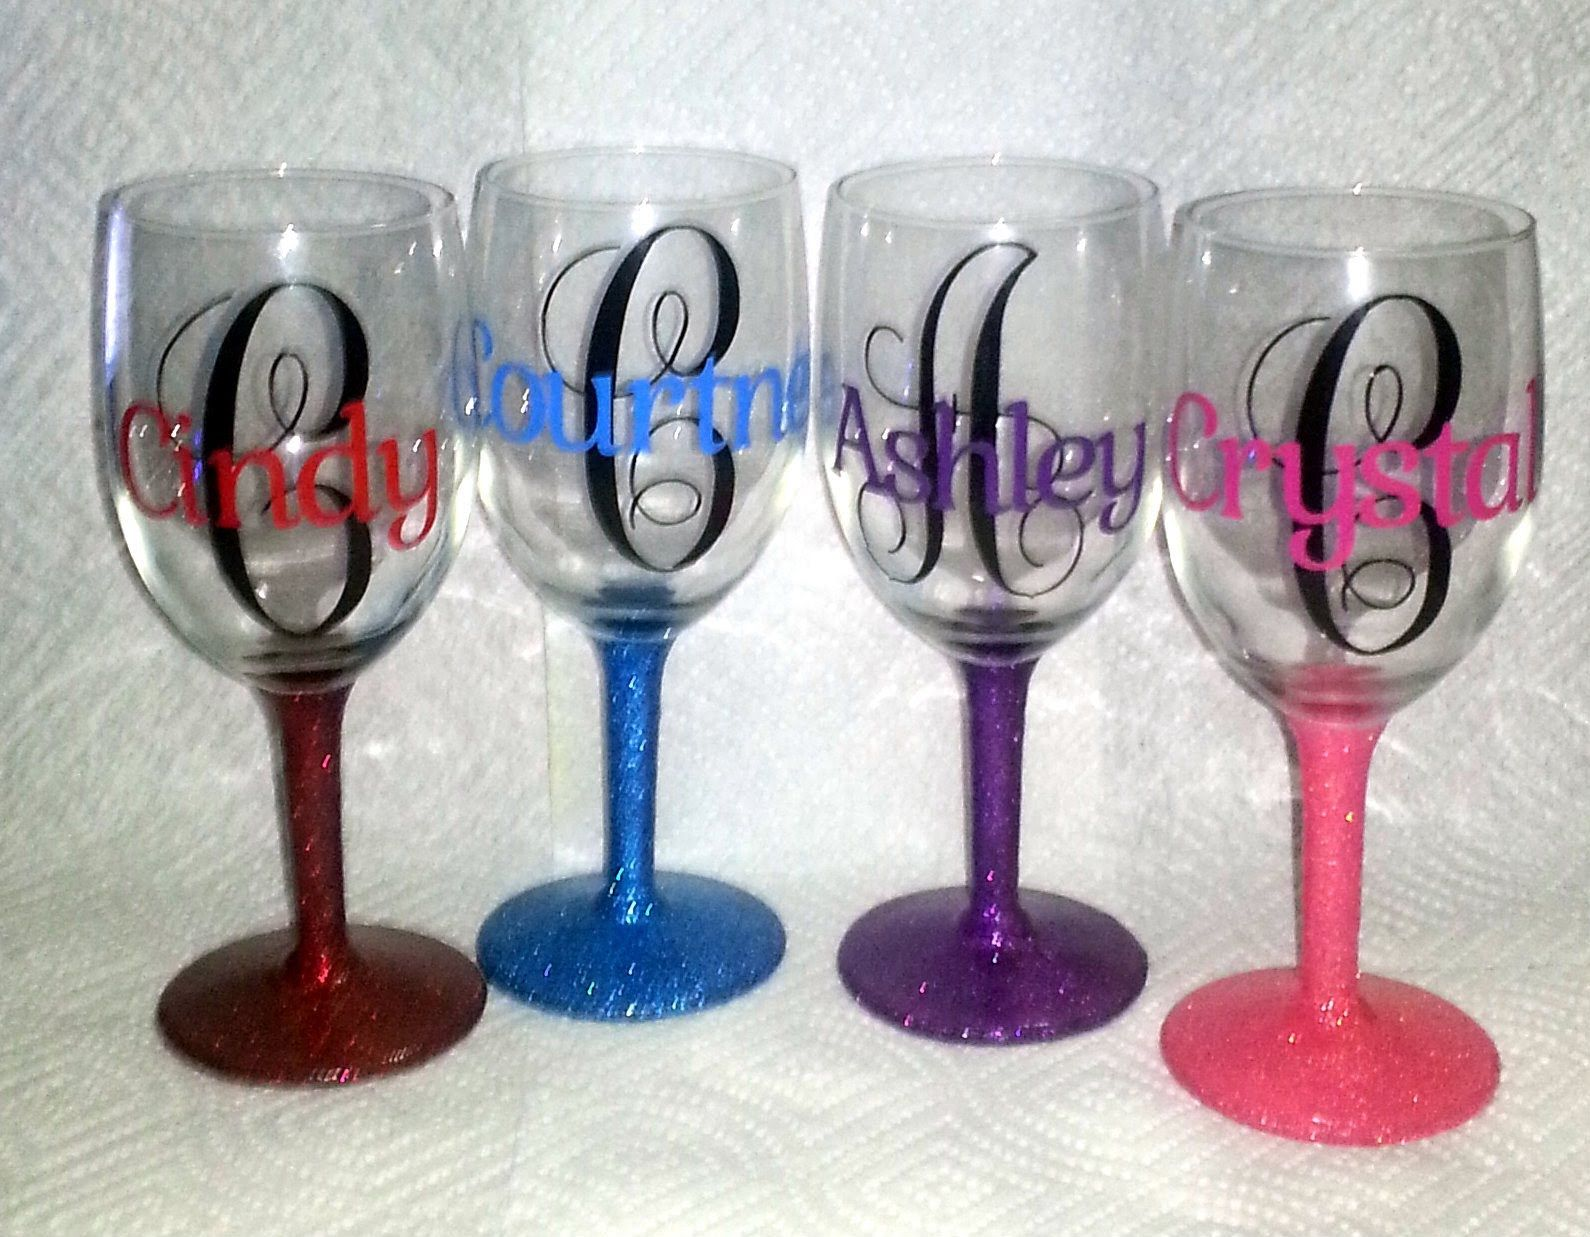 personalized wine glasses i may try and make these for christmas gifts carola - Wine Glass Design Ideas